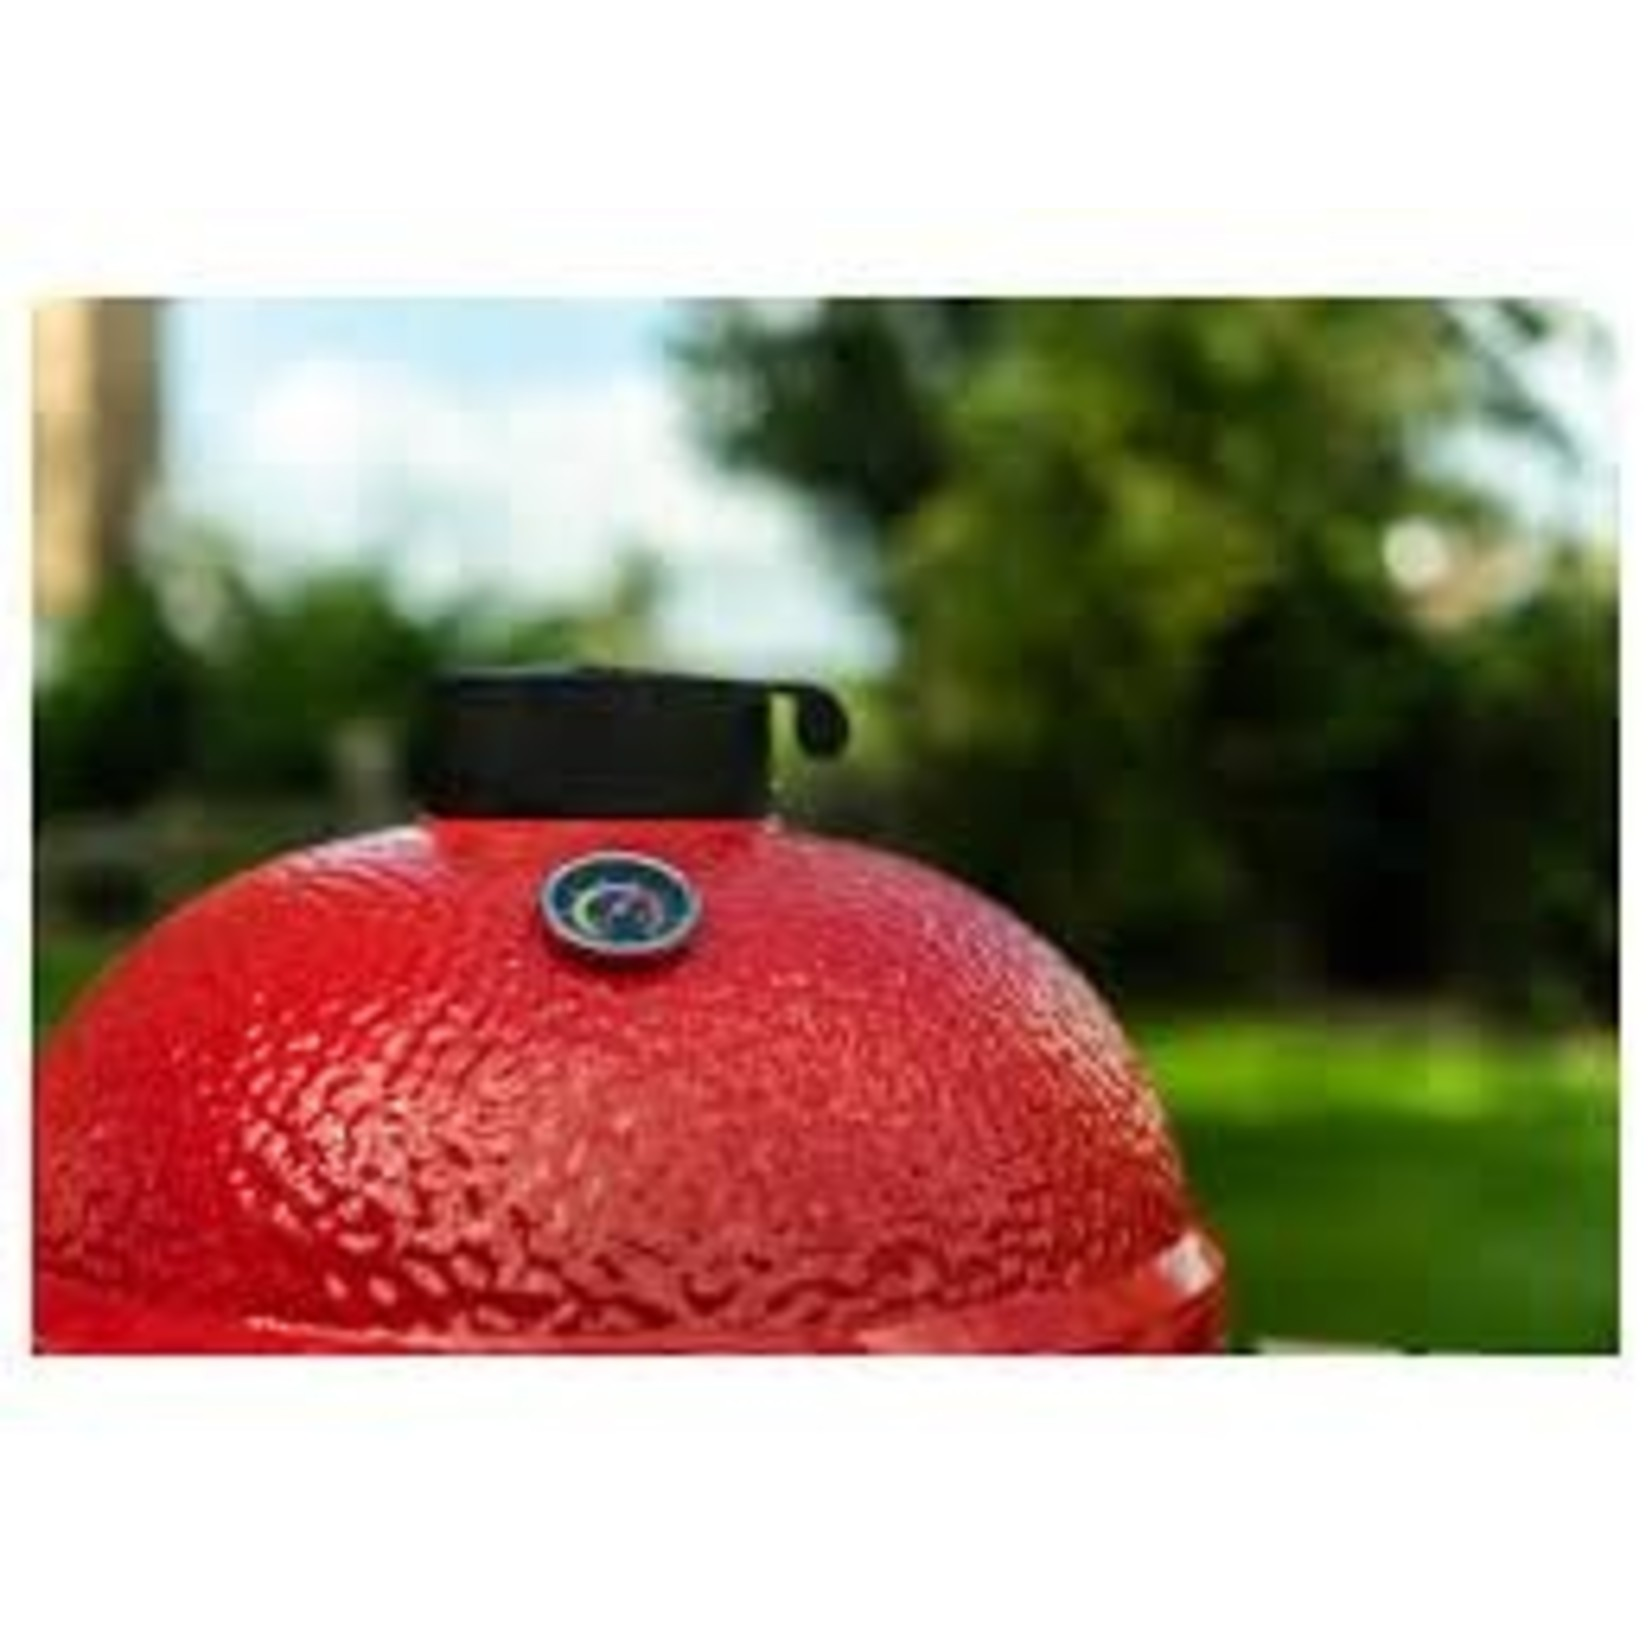 Outr Outr kamado grill large 55 rood